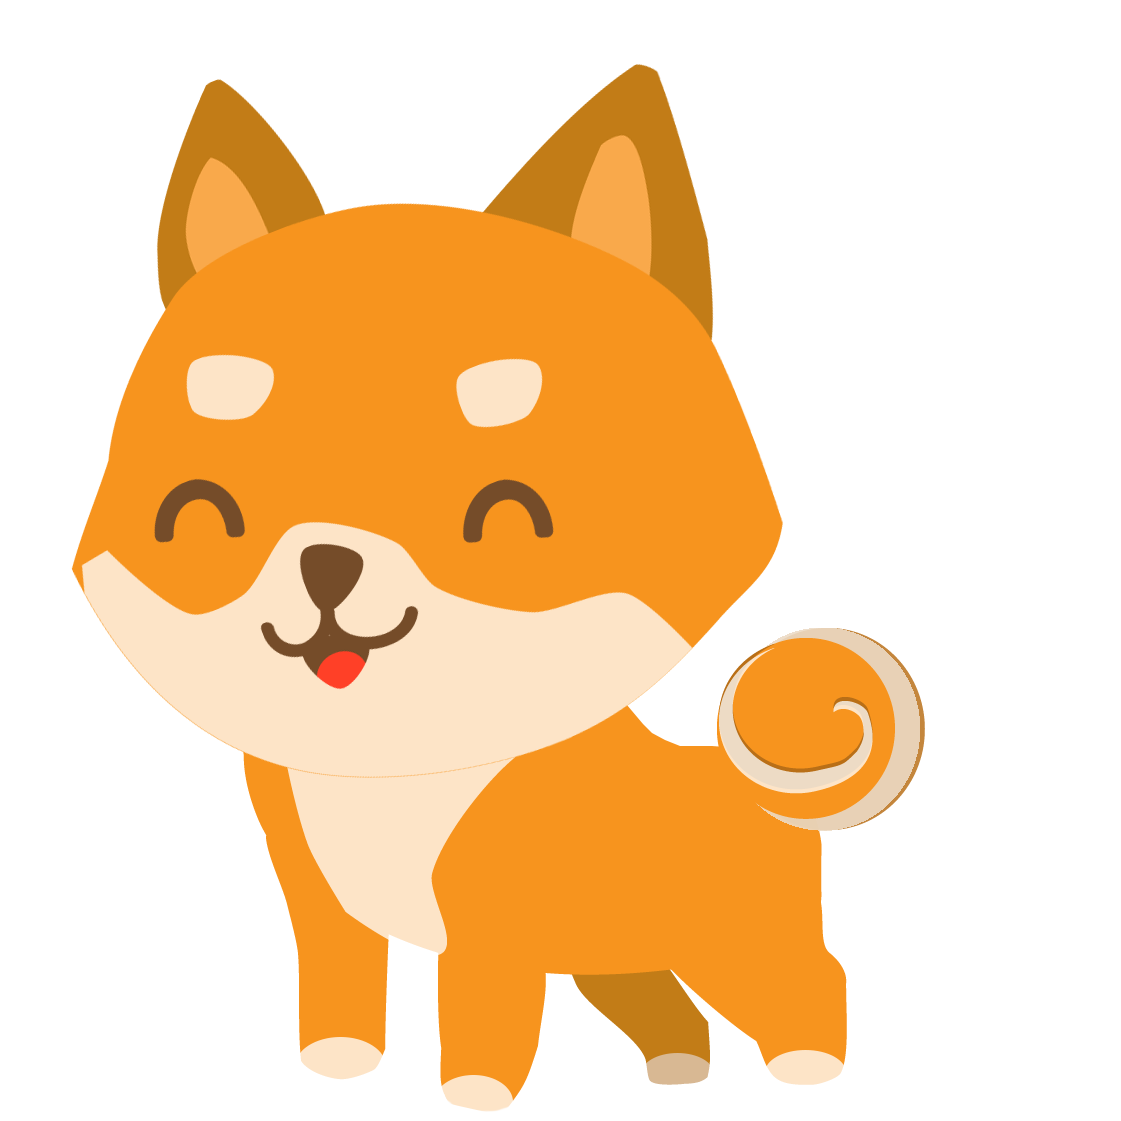 Shiba Faucet Inu Bitcoin Cat Cryptocurrency PNG Image